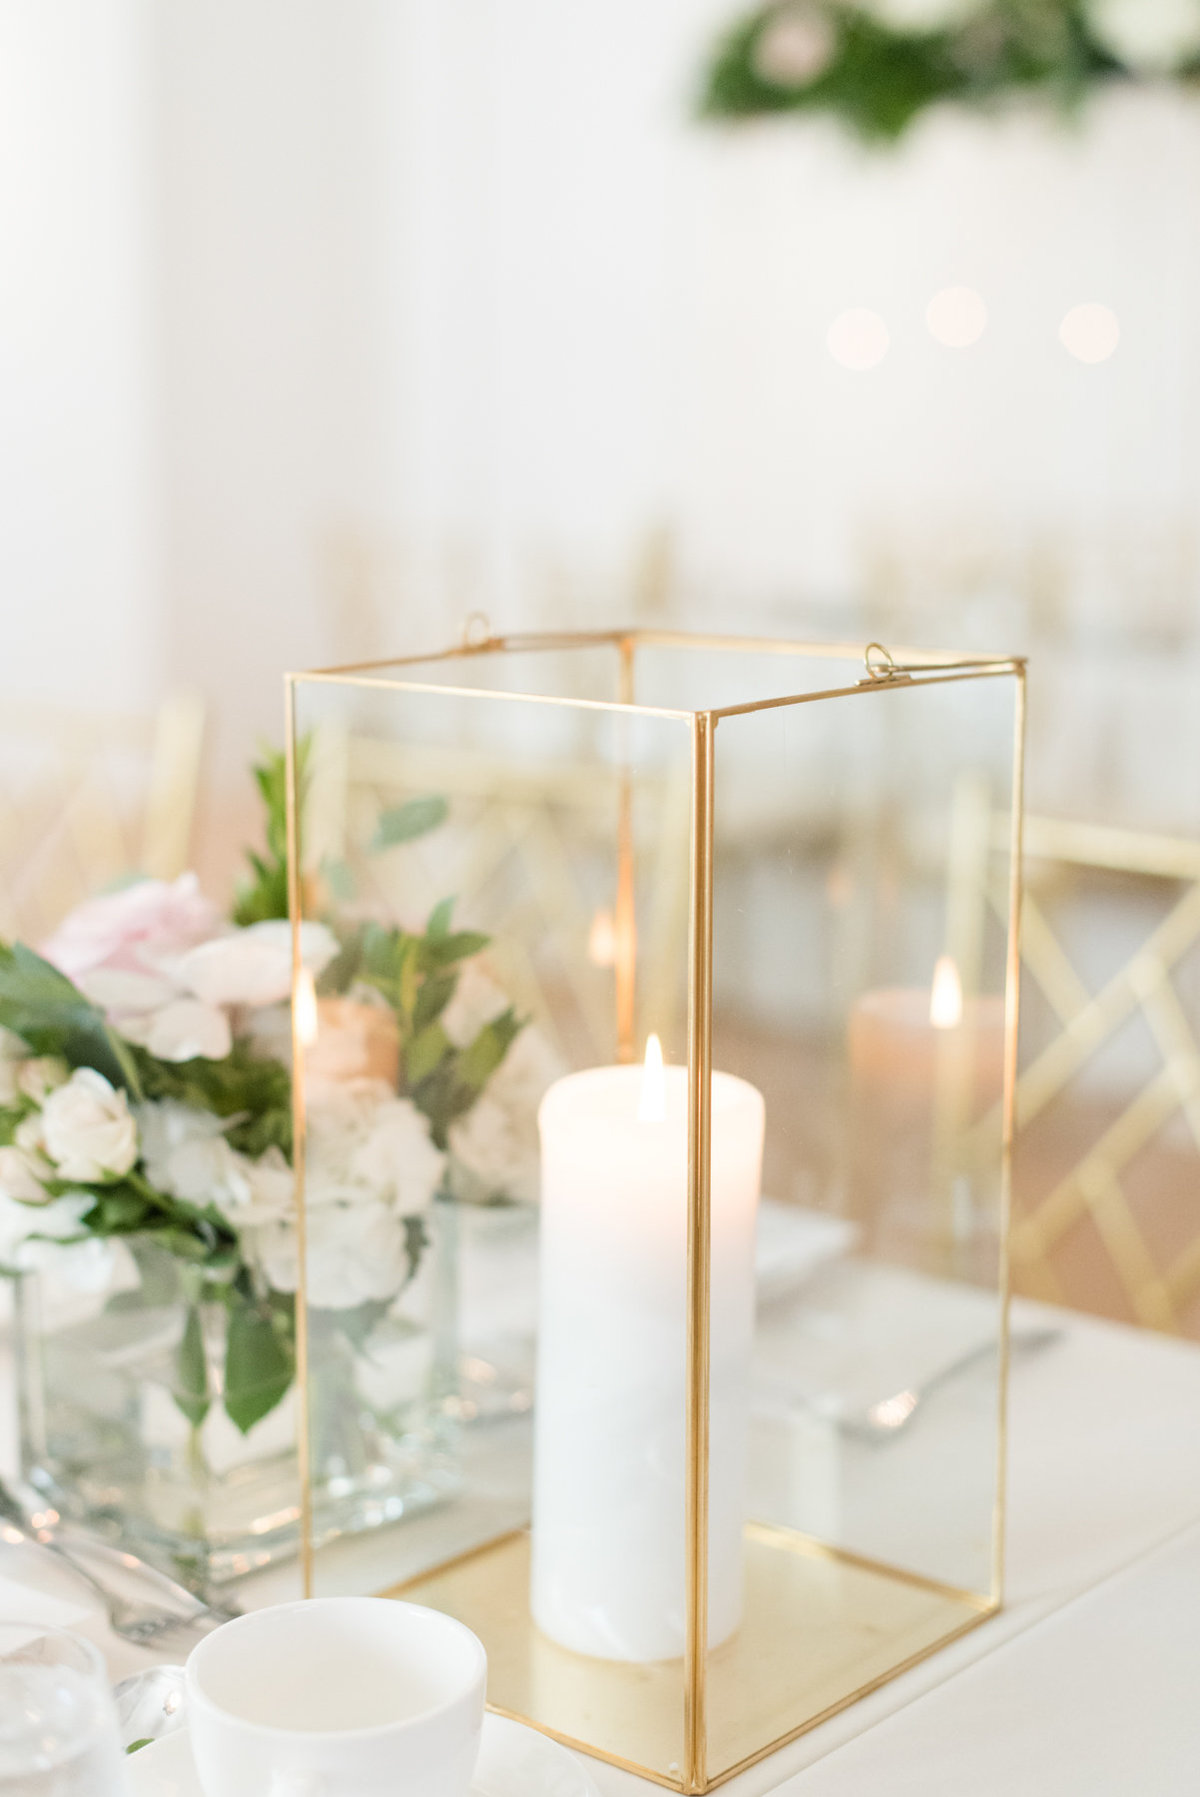 Candle in gold and glass box on the table at The Chanterellle